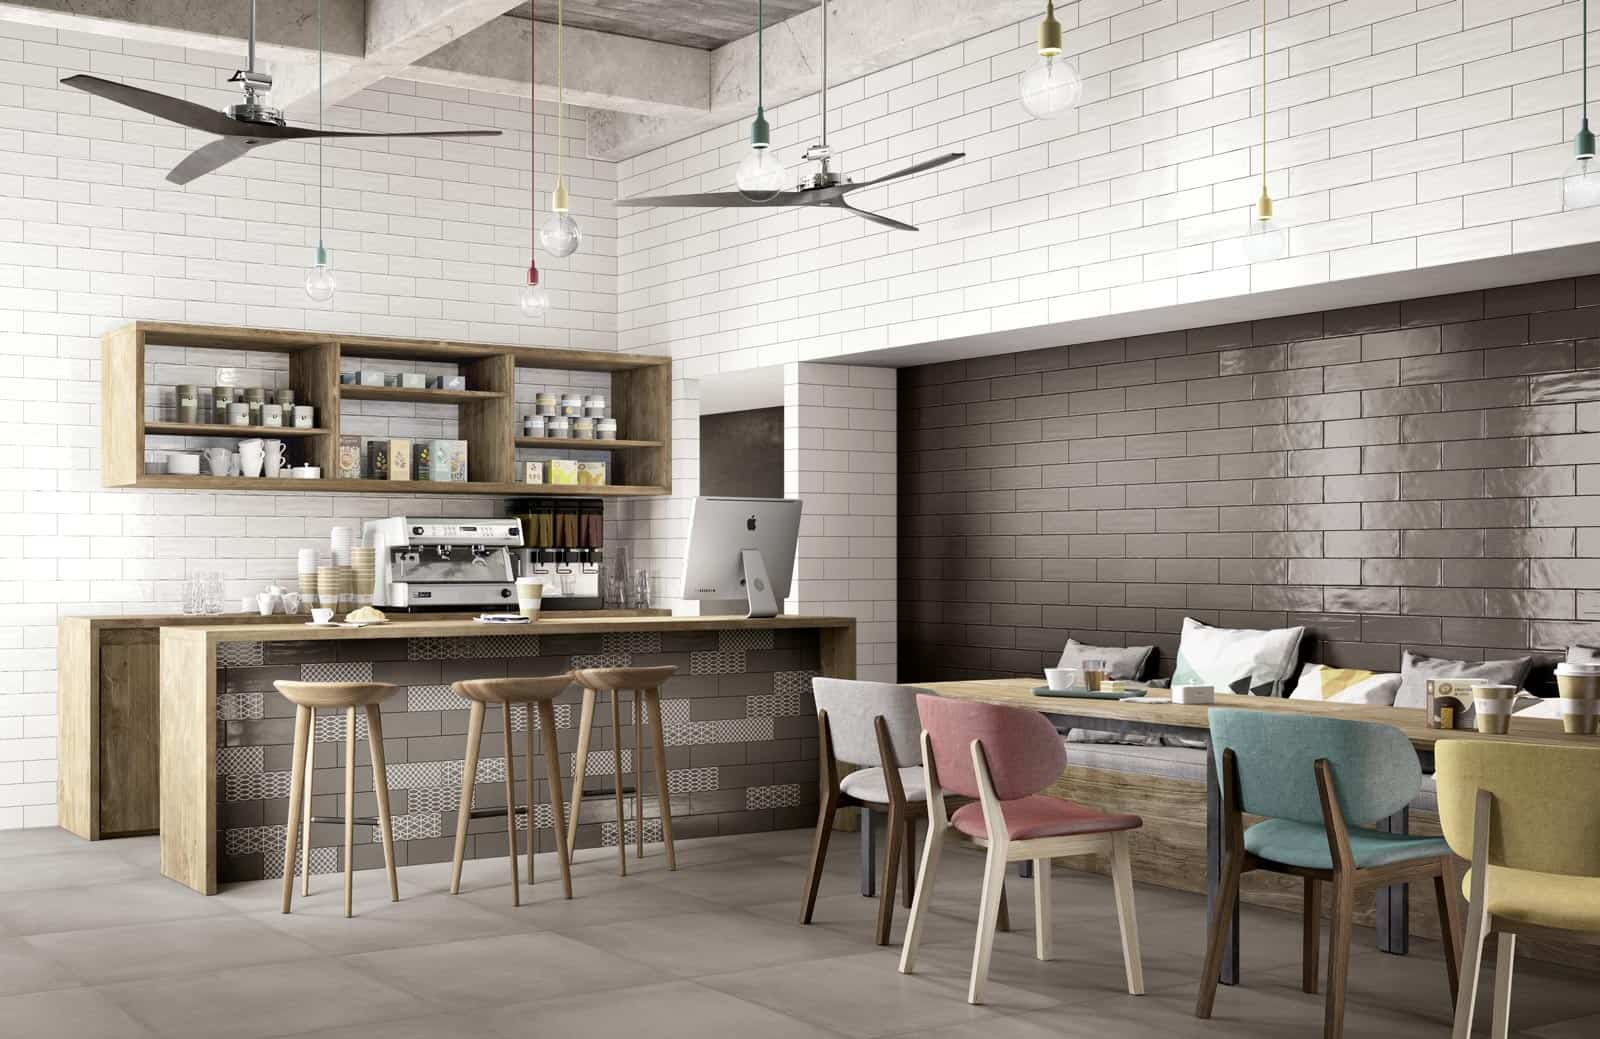 Cool 12X12 Acoustic Ceiling Tiles Thick 12X12 Vinyl Floor Tile Clean 12X24 Ceramic Floor Tile 2 By 2 Ceiling Tiles Young 2X4 Ceiling Tiles Cheap Soft2X4 Subway Tile Backsplash Tiling Walls In Brick Tile Pattern Is Easy With The New Glossy Brick ..